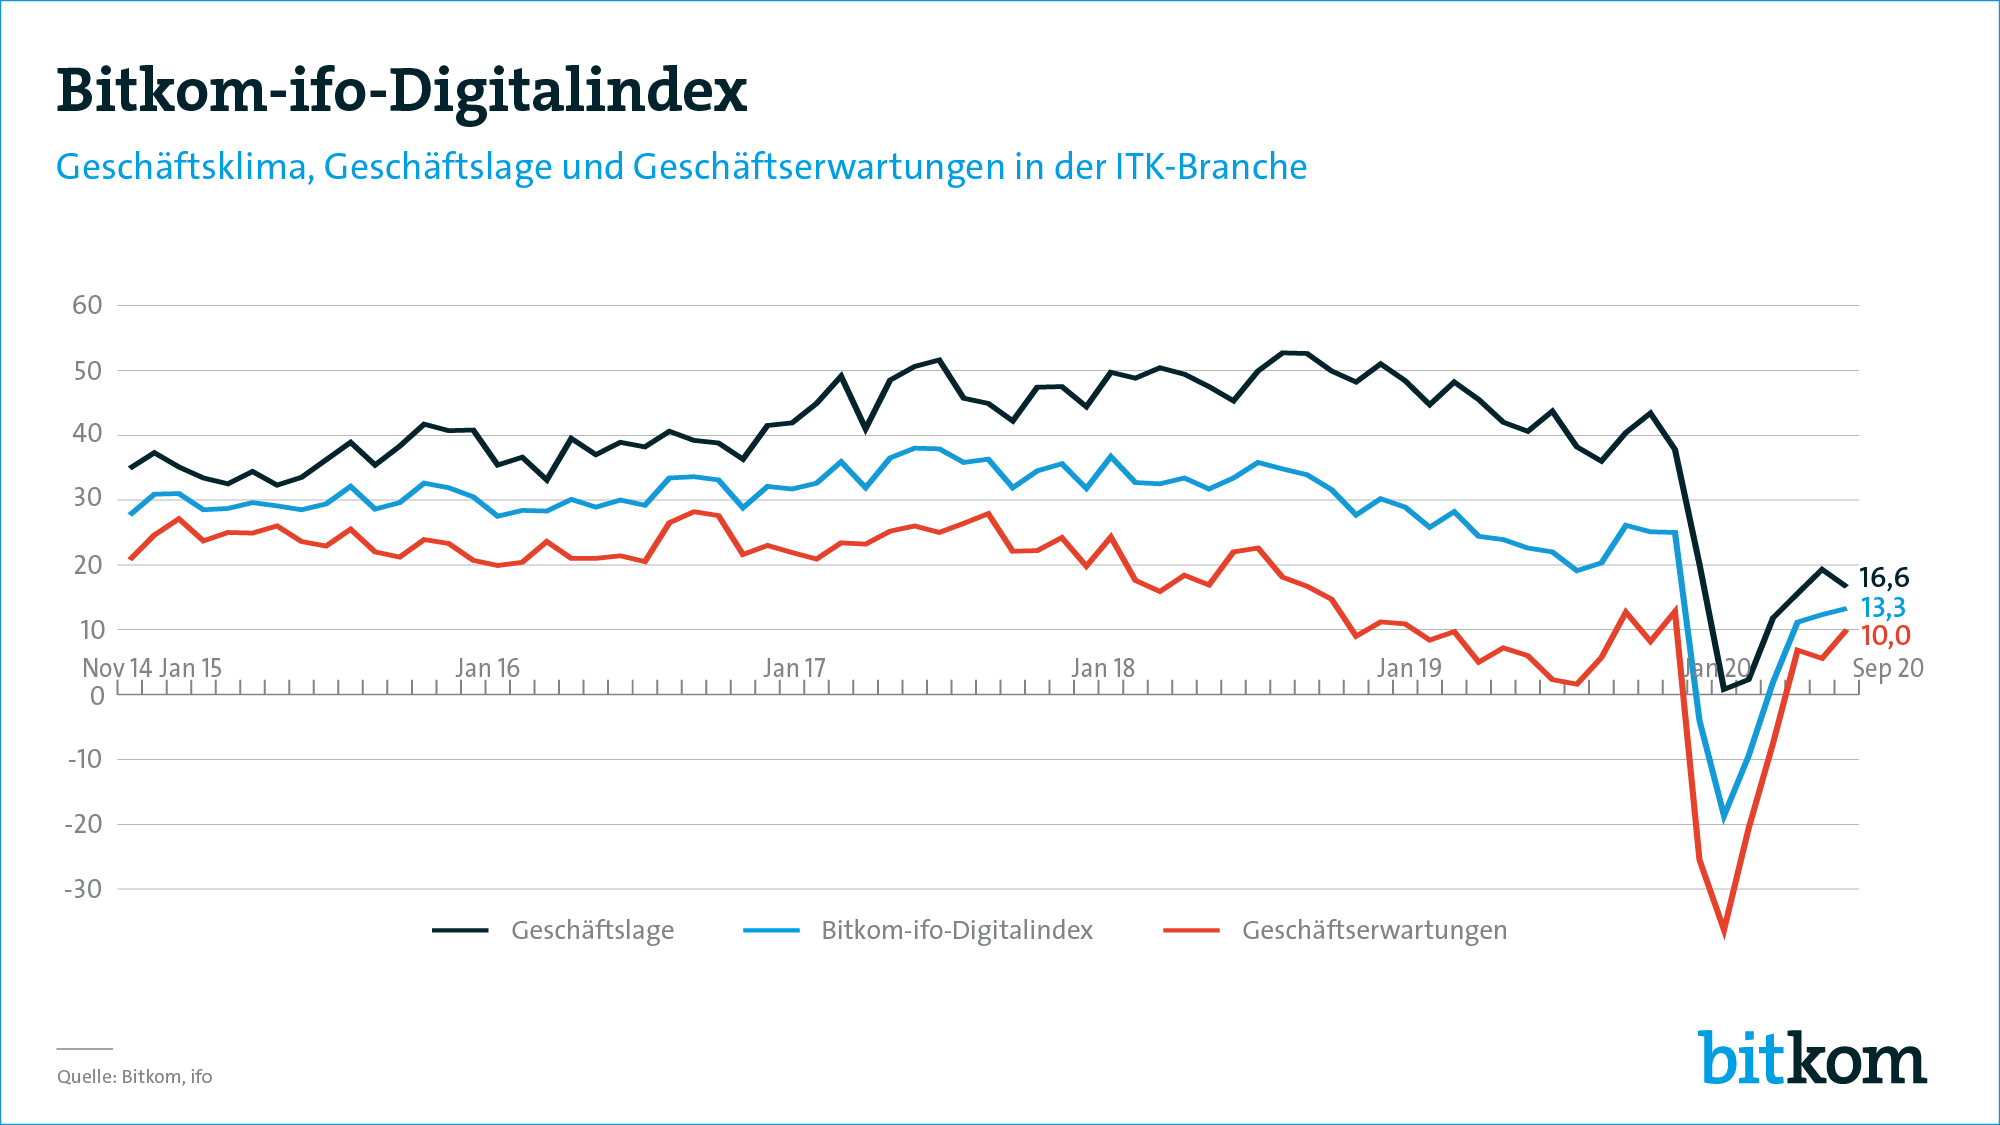 August 2020: Bitkom-ifo-Digitalindex Grafik zum Download